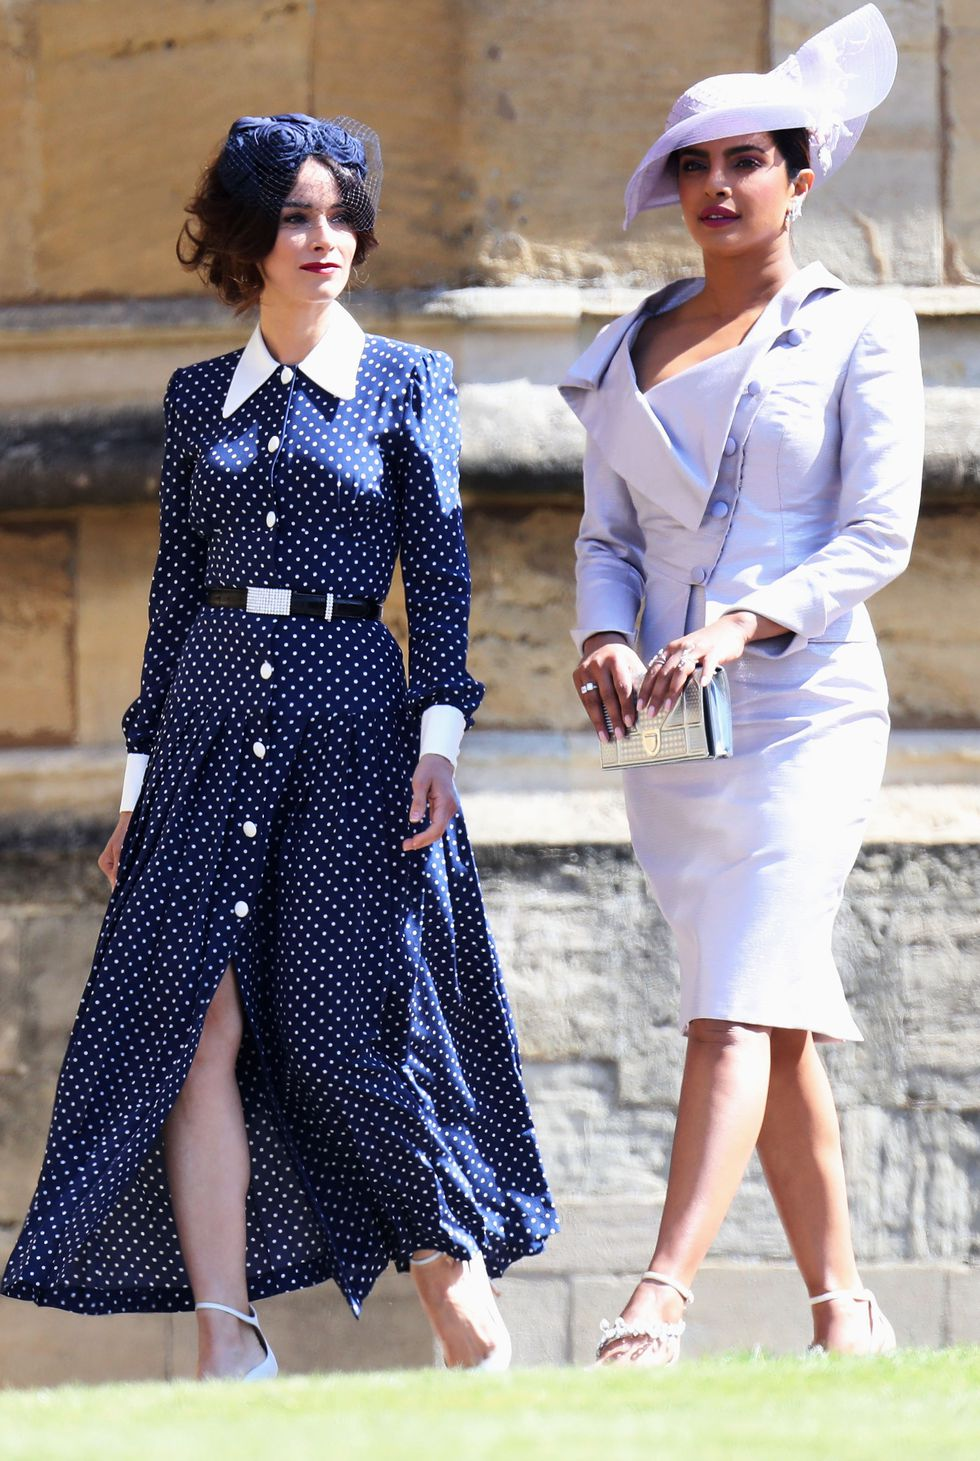 Priyanka Chopra at Meghan Markle's Wedding